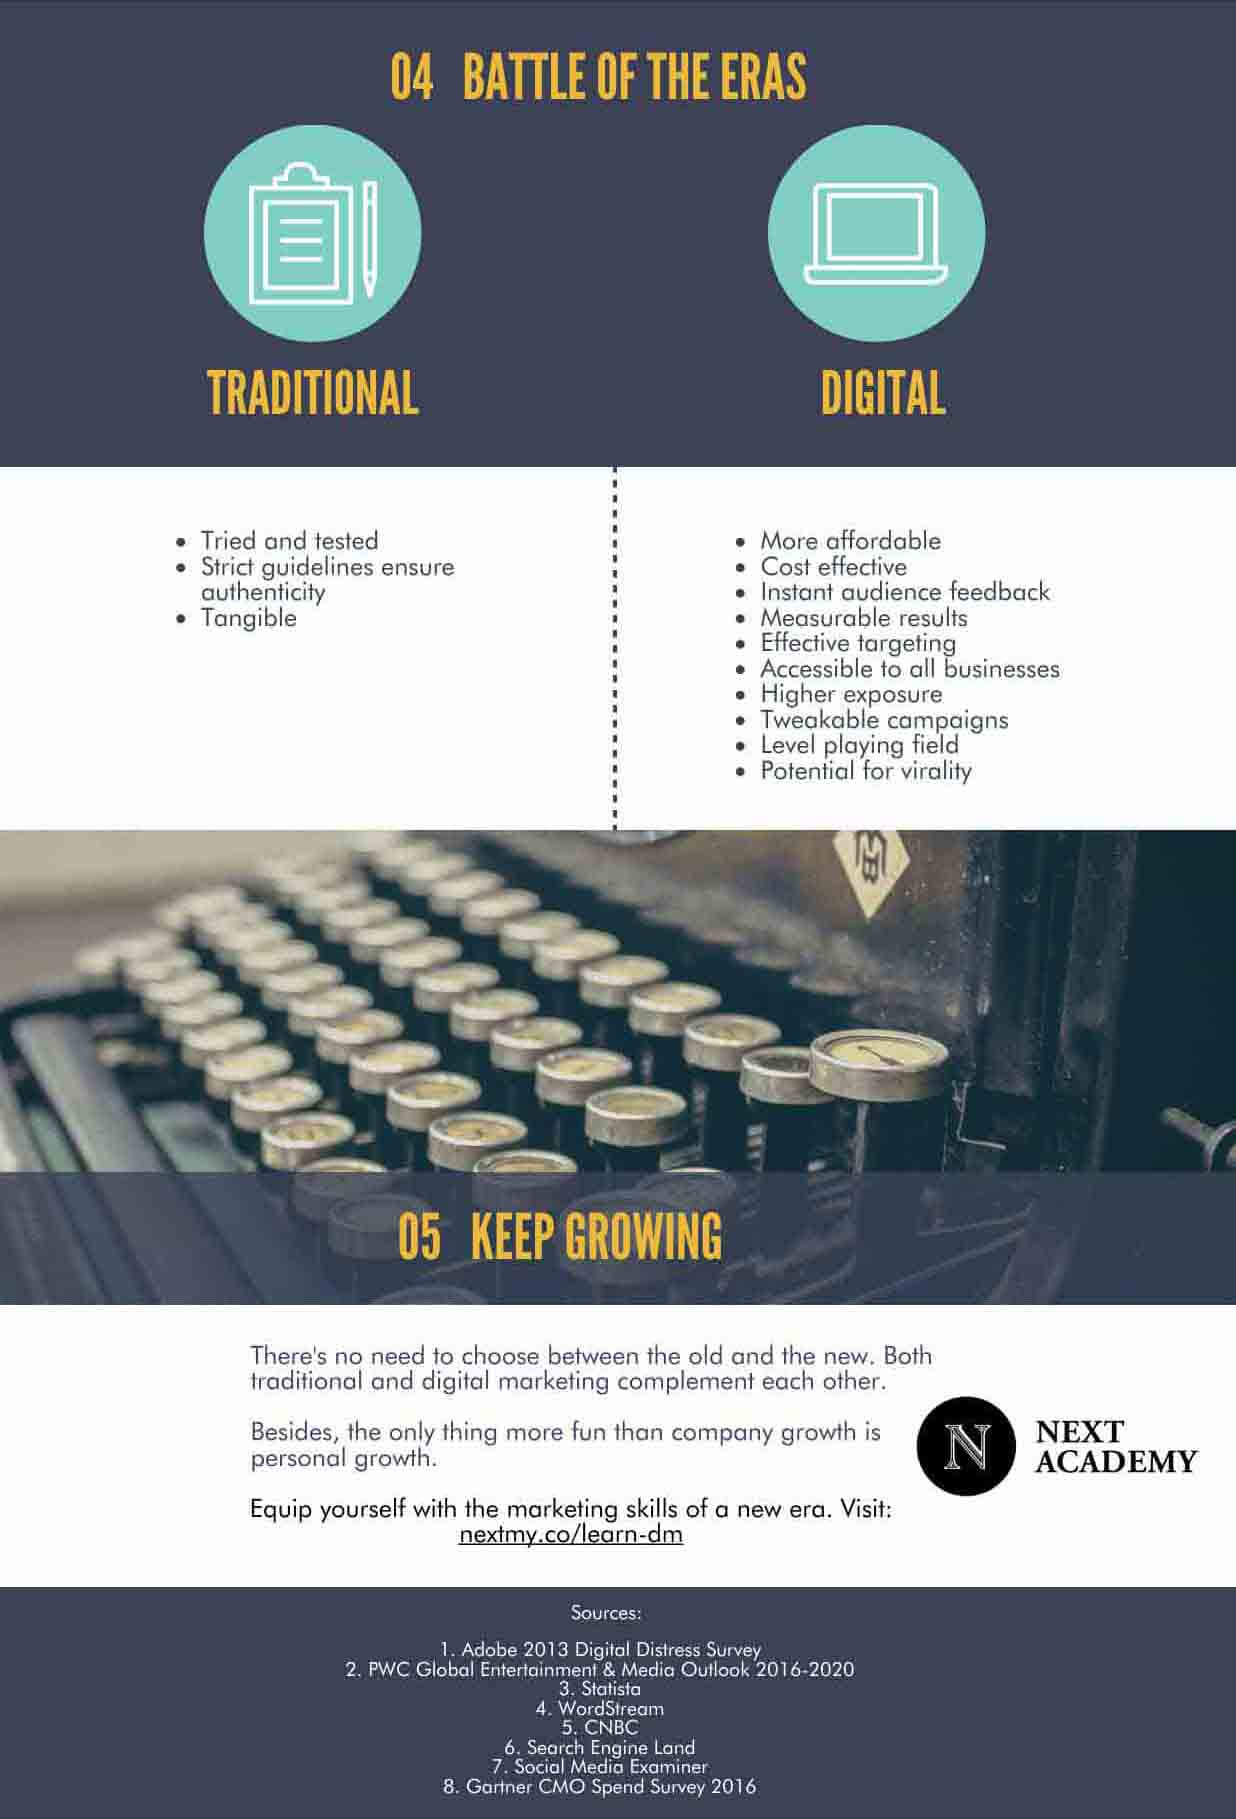 Infographic about why business should go and try digital marketing part 3